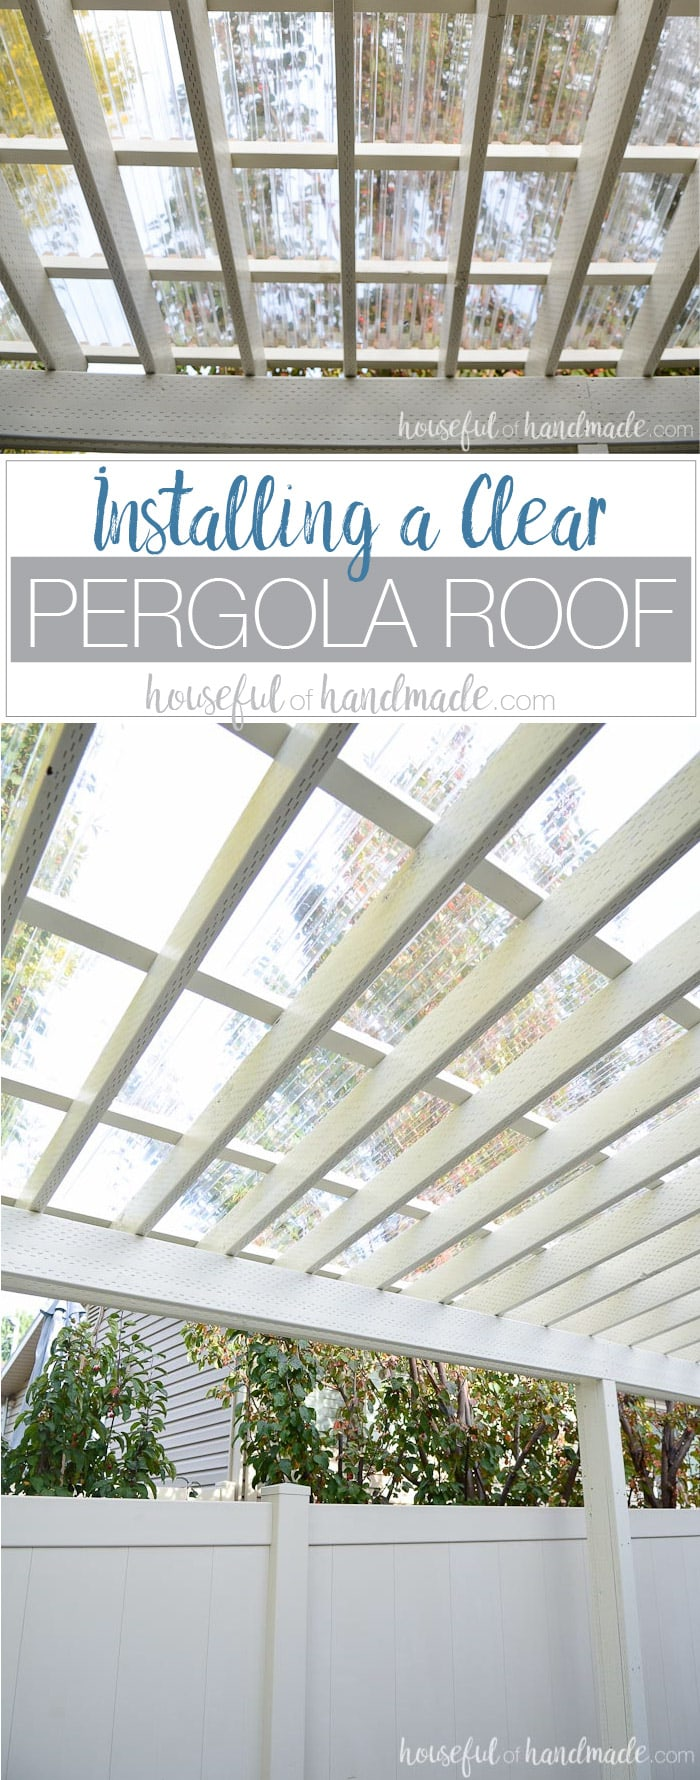 Installing A Clear Pergola Roof Houseful Of Handmade